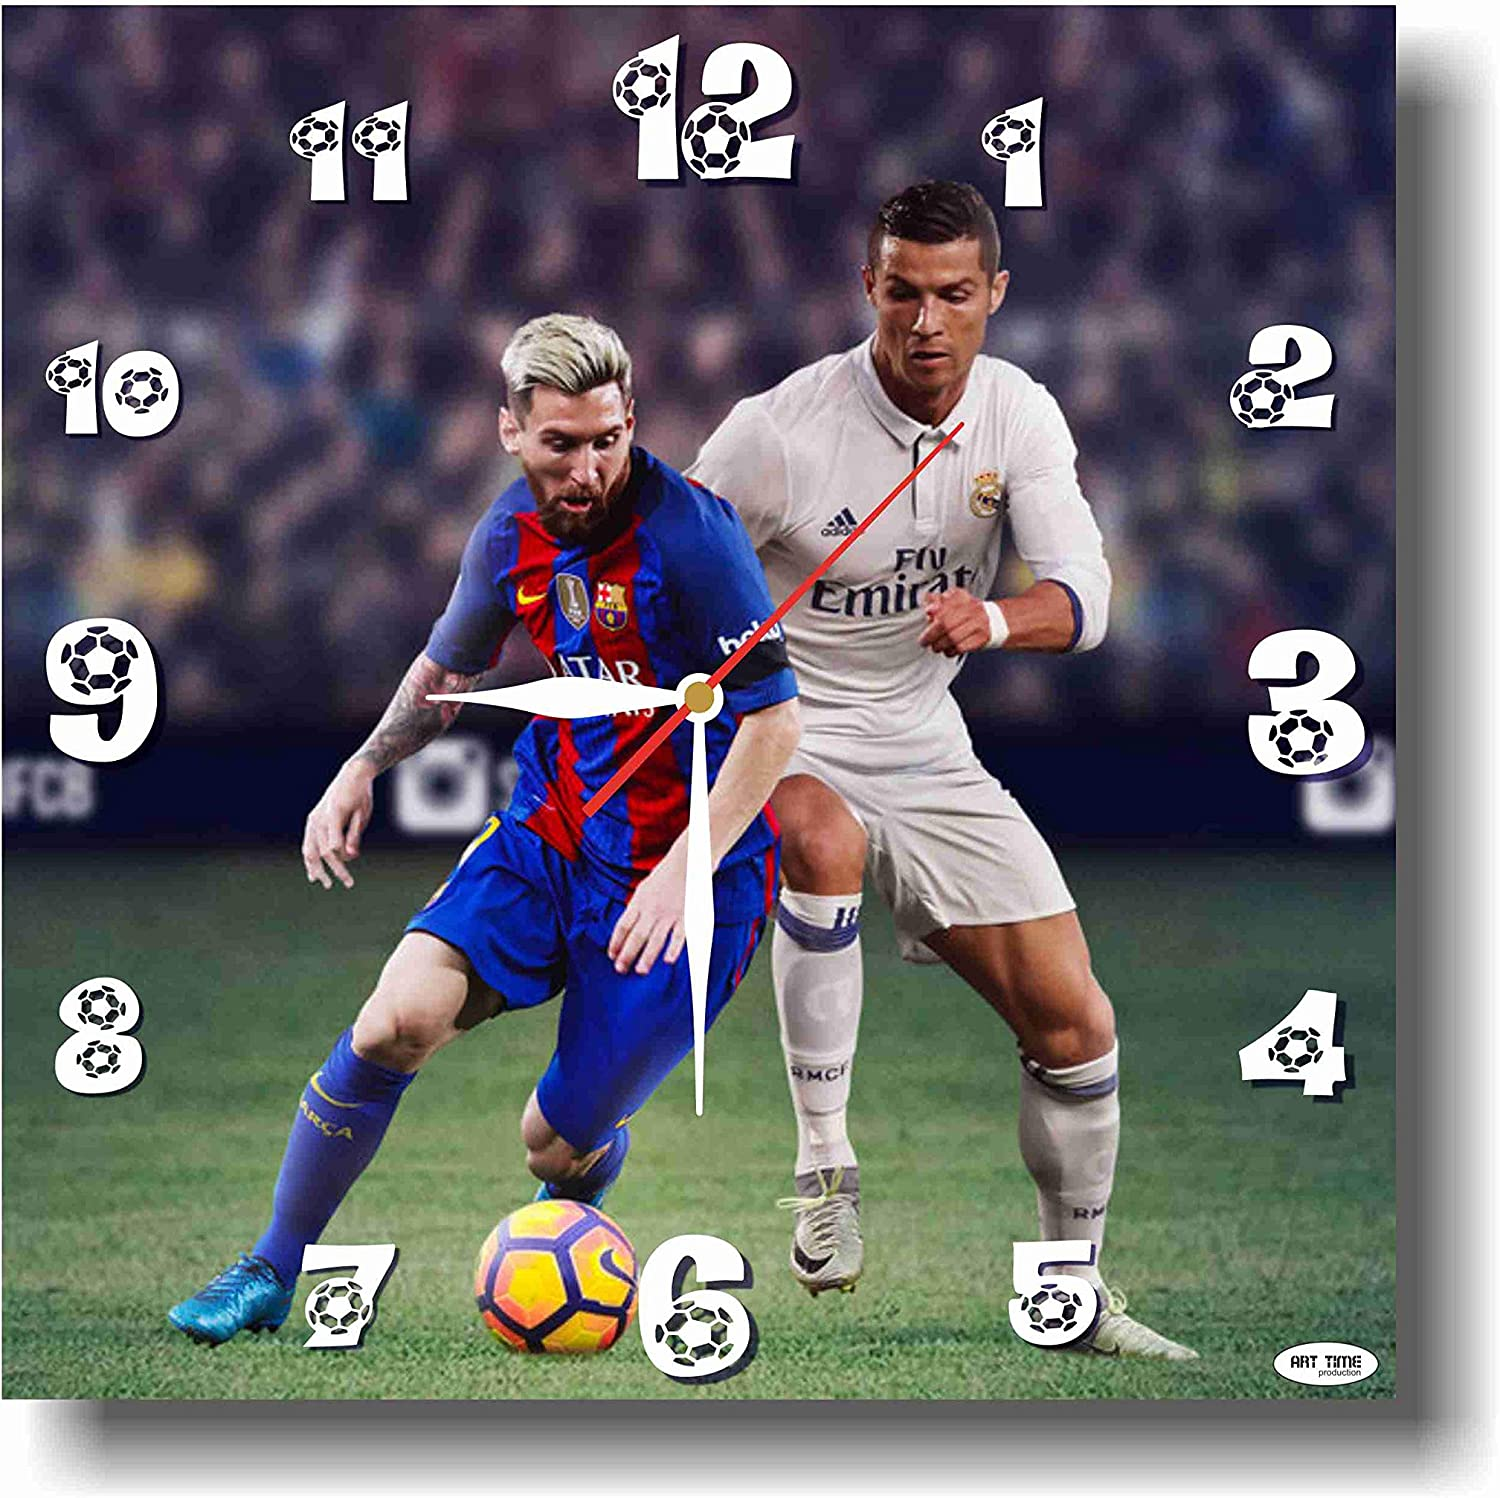 Art time production Lionel Messi&Cristiano Ronaldo 11'' Handmade Wall Clock - Get Unique décor for Home or Office – Best Gift Ideas for Kids, Friends, Parents and Your Soul Mates